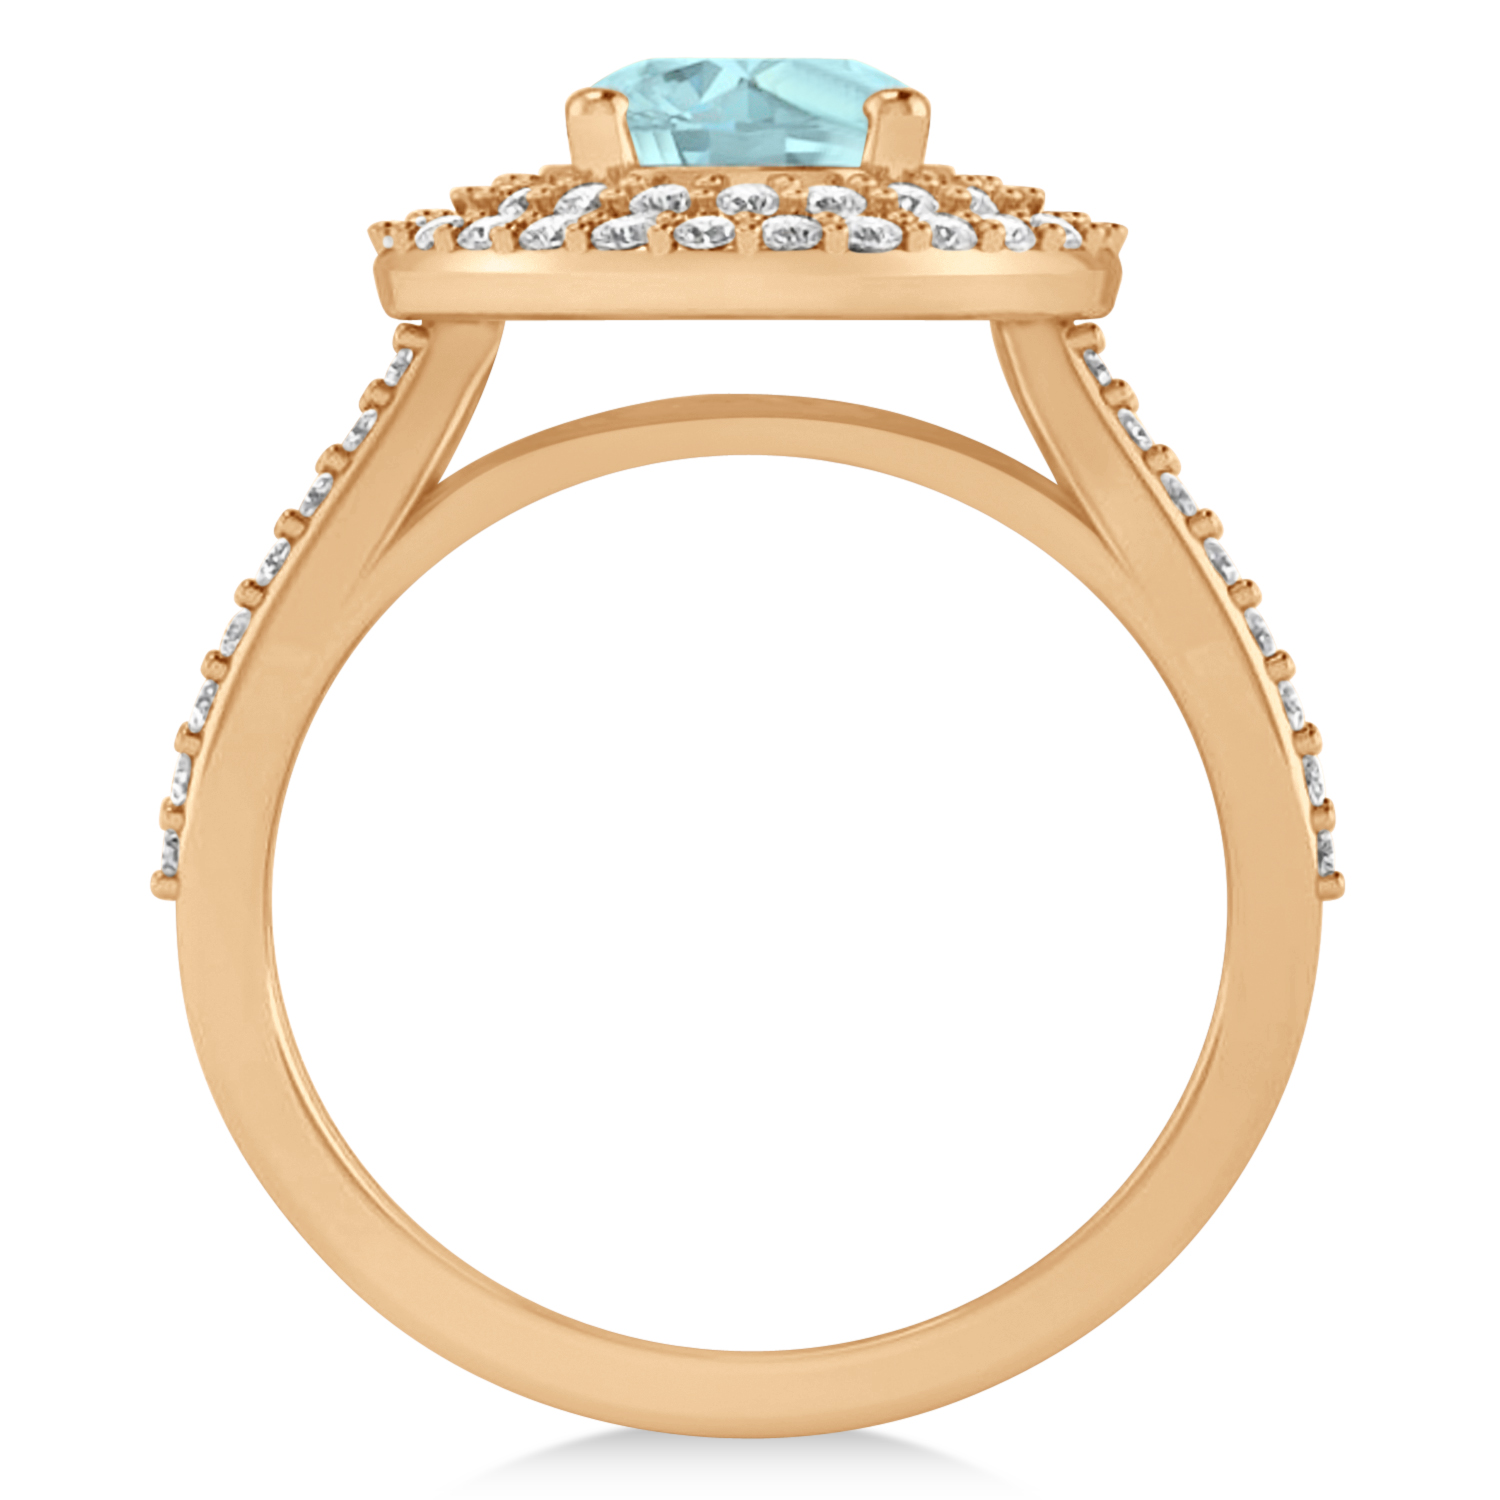 Double Halo Aquamarine Engagement Ring 14k Rose Gold 2 27ct Allurez